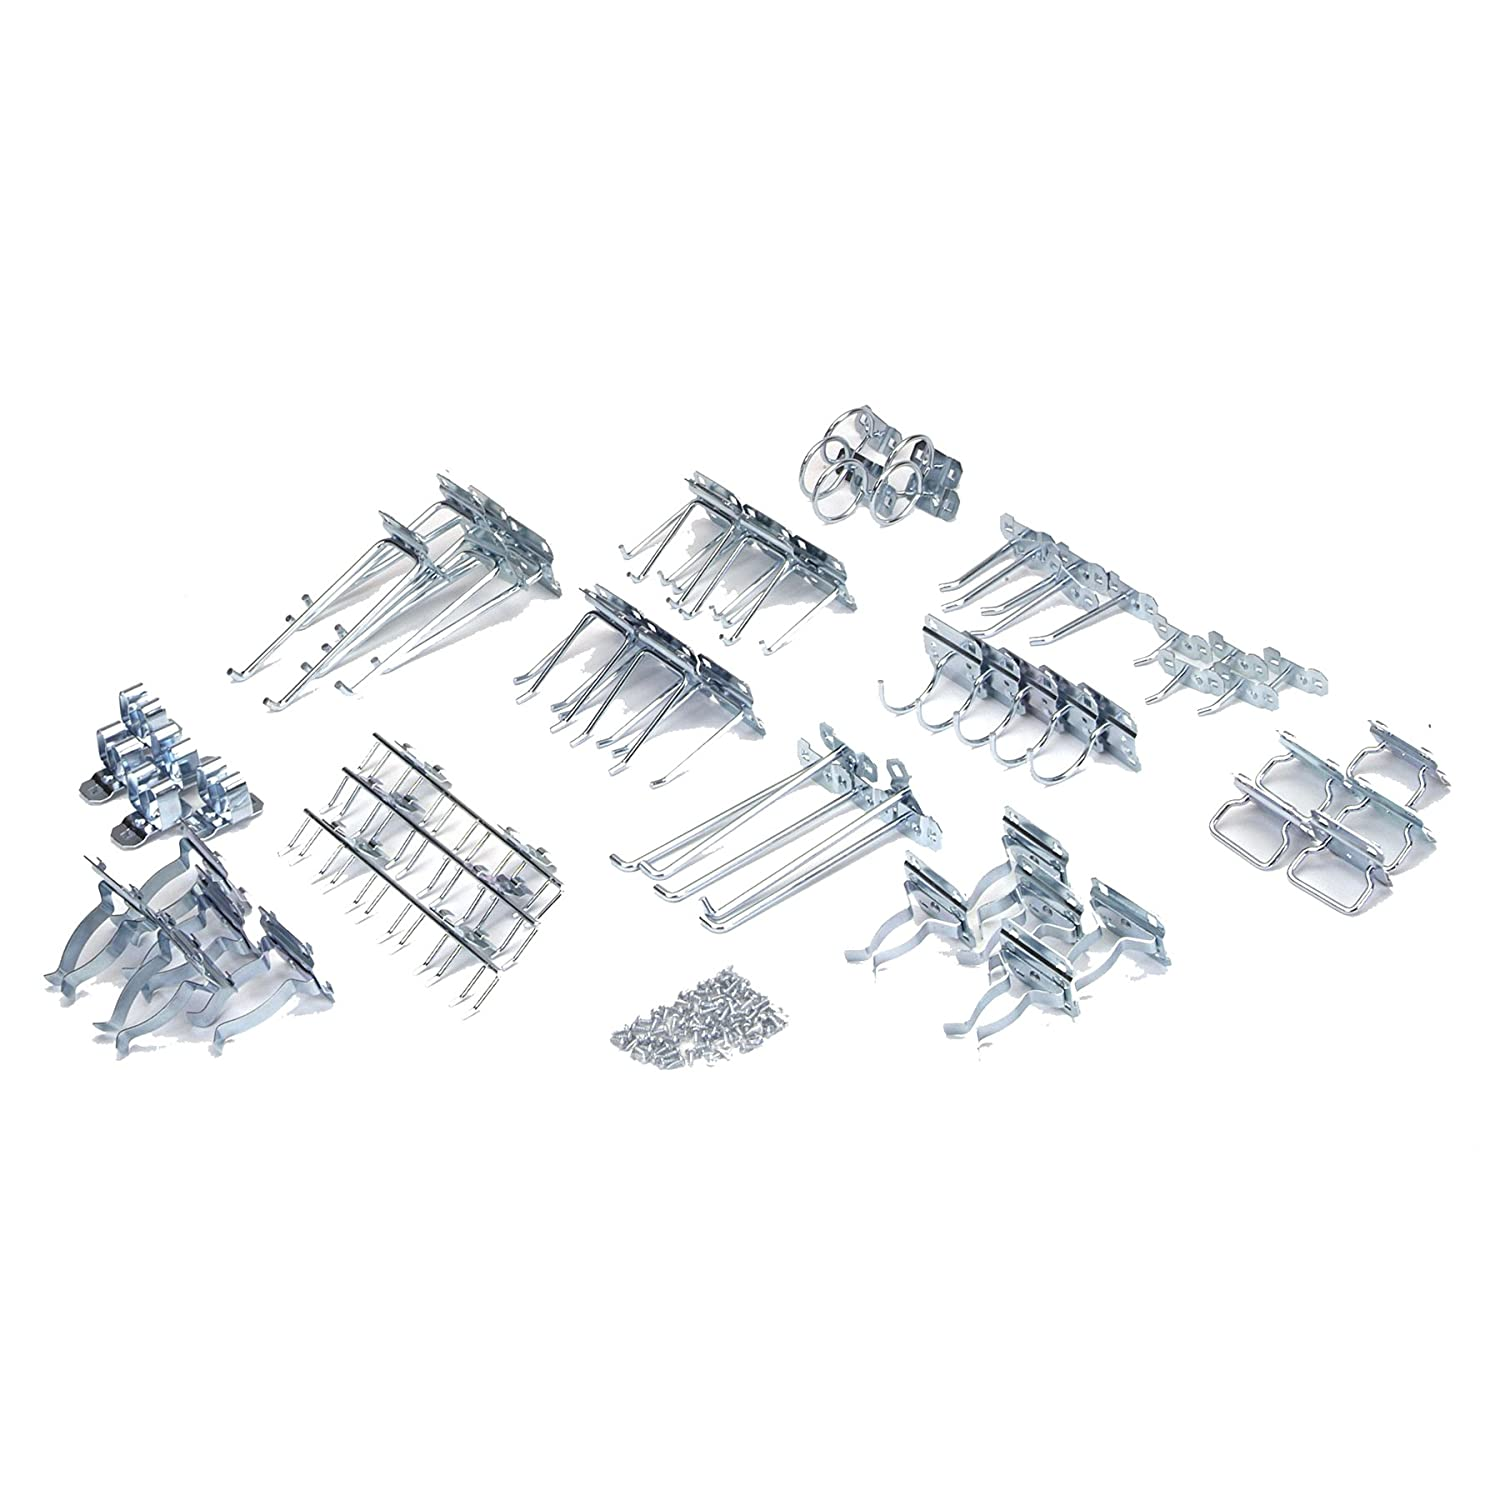 Triton Products LH2-Kit LocHook 63 Piece Zinc Plated Steel Hook Assortment for LocBoard